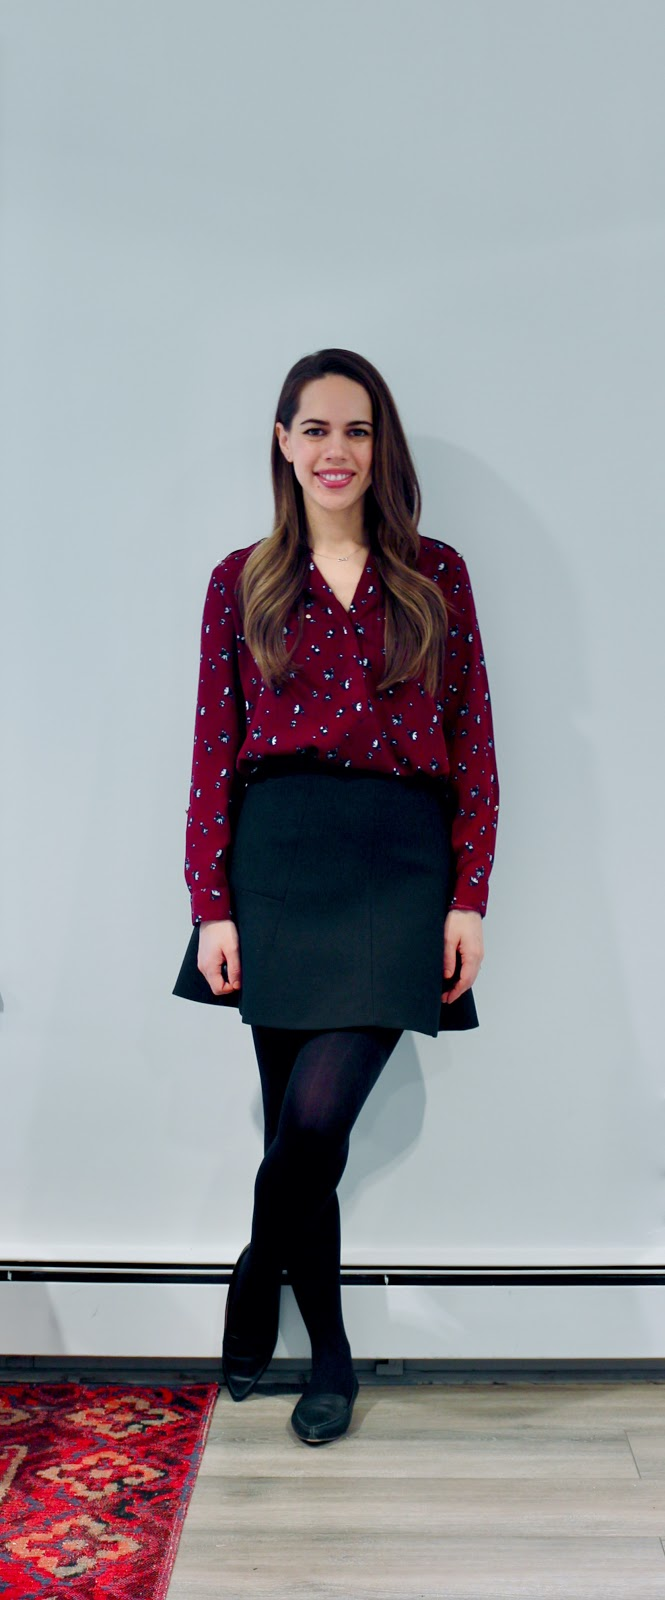 Jules in Flats - Burgundy Floral Blouse with Fit and Flare Mini Skirt (Business Casual Winter Workwear on a Budget)